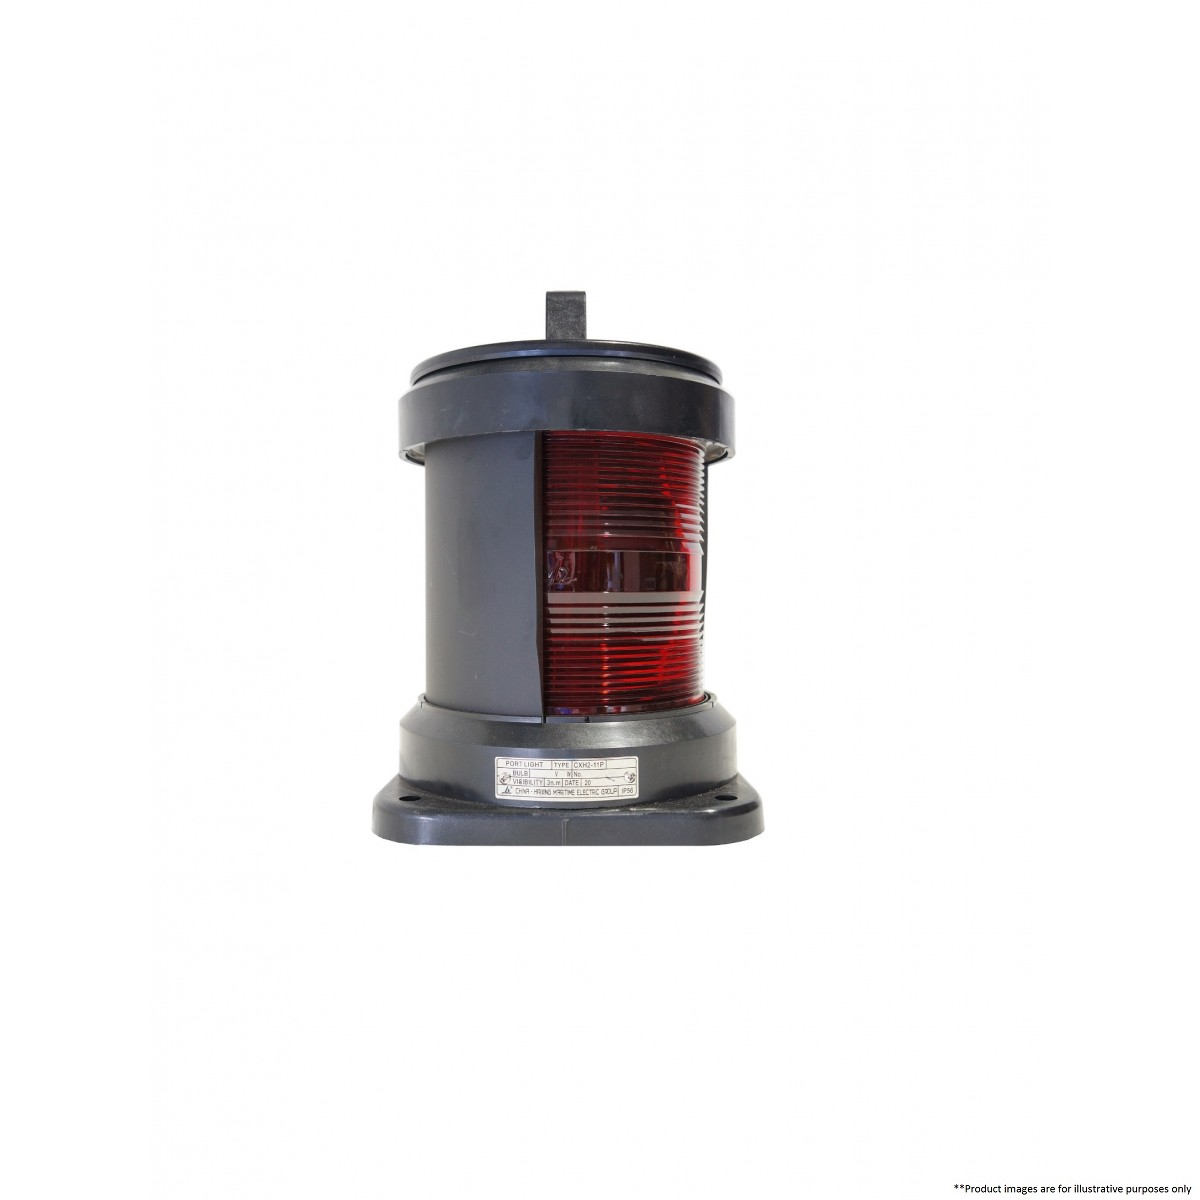 HAIXING CXH2-11P PORT LIGHT NAVIGATION LIGHT - Haixing - By